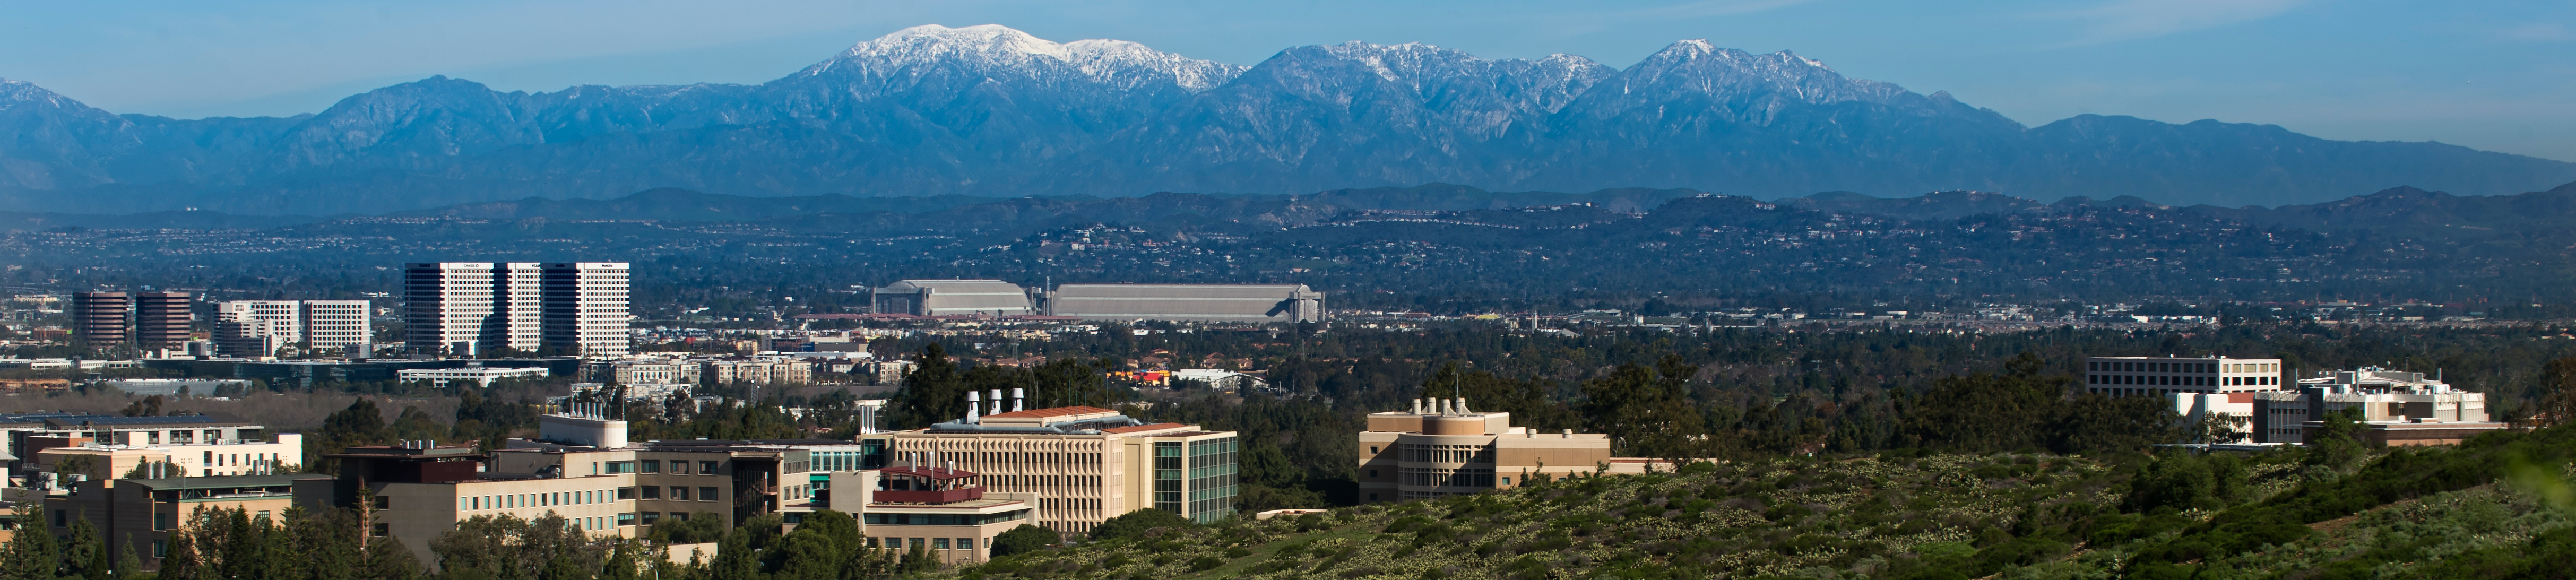 View of portion of campus and Irvine with snowcapped mountains in the background